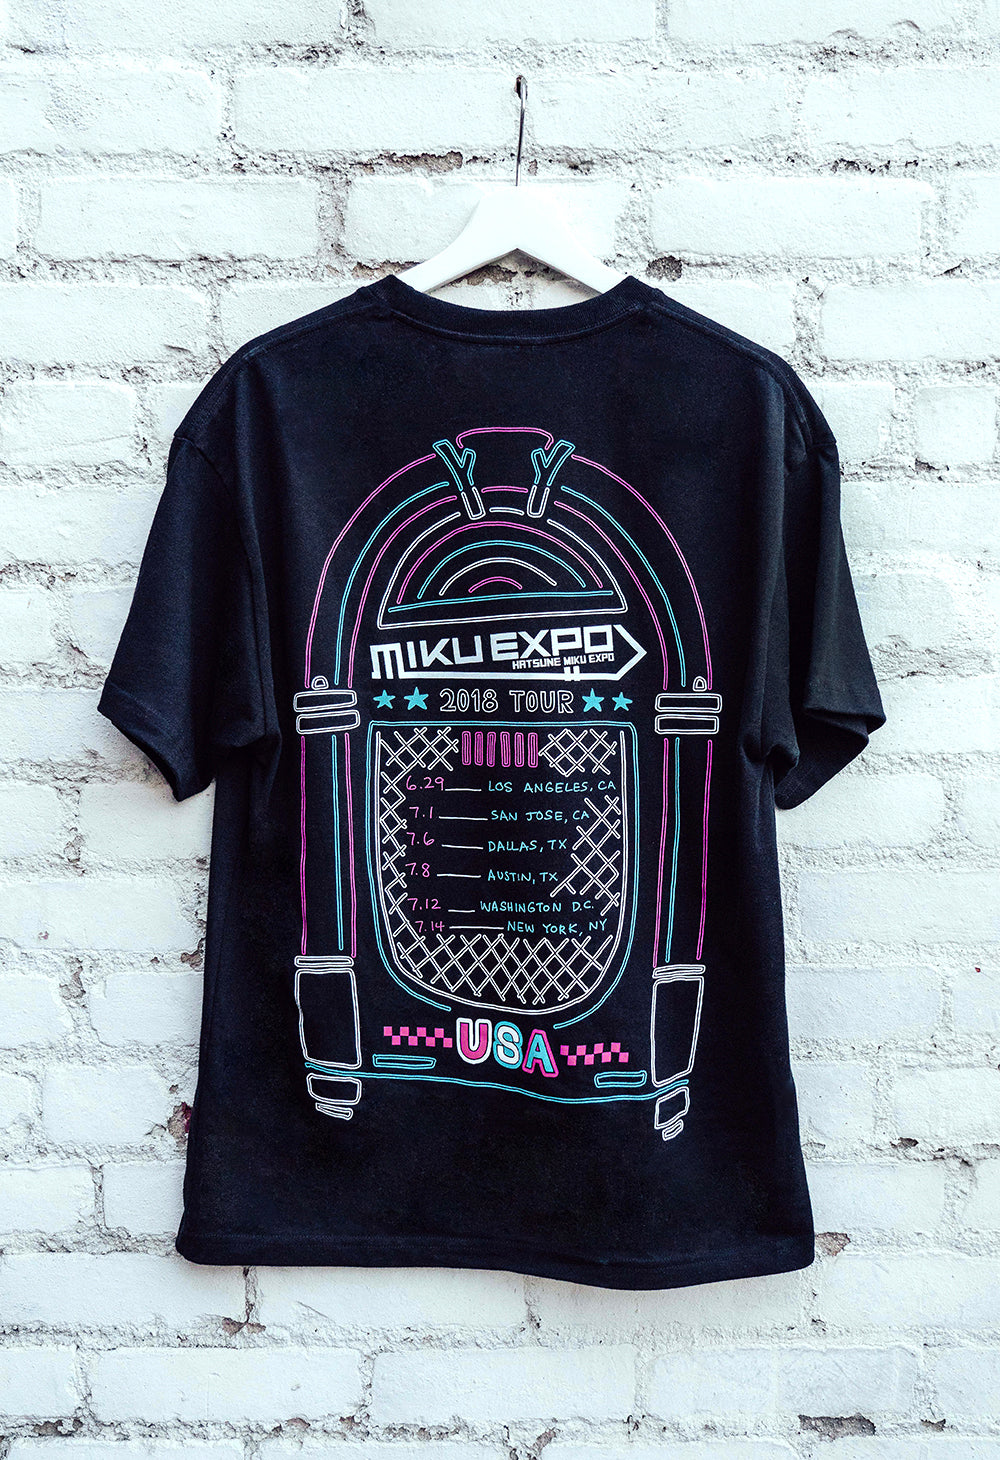 MIKU EXPO U.S.A. TOUR T-Shirt